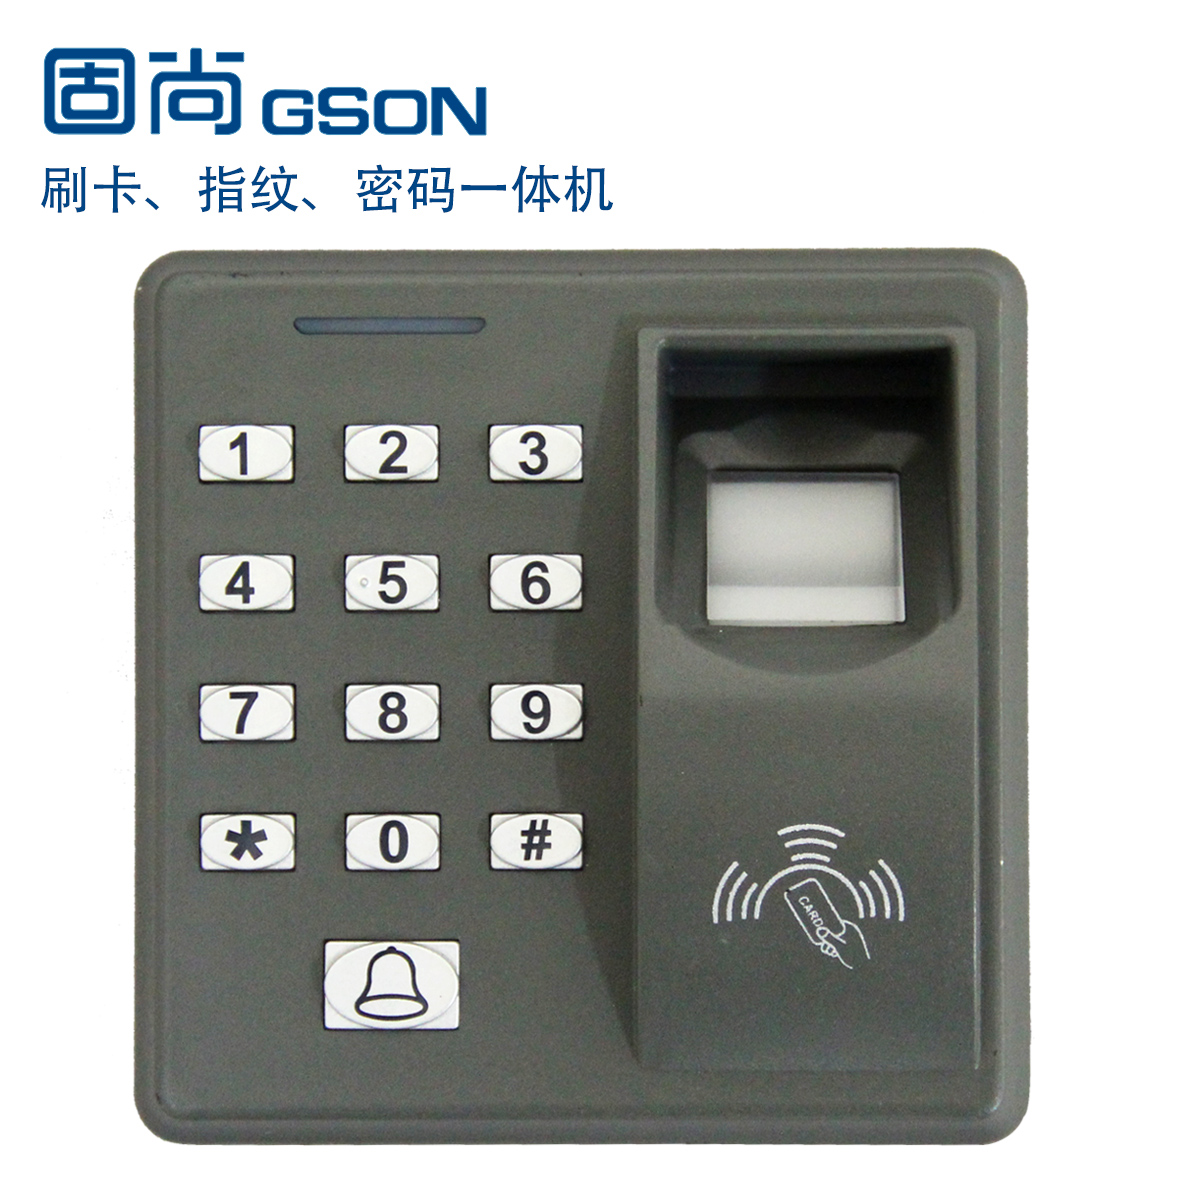 Gson solid yet have id card single door access controller access control systems access one machine card password access control system fingerprint brush